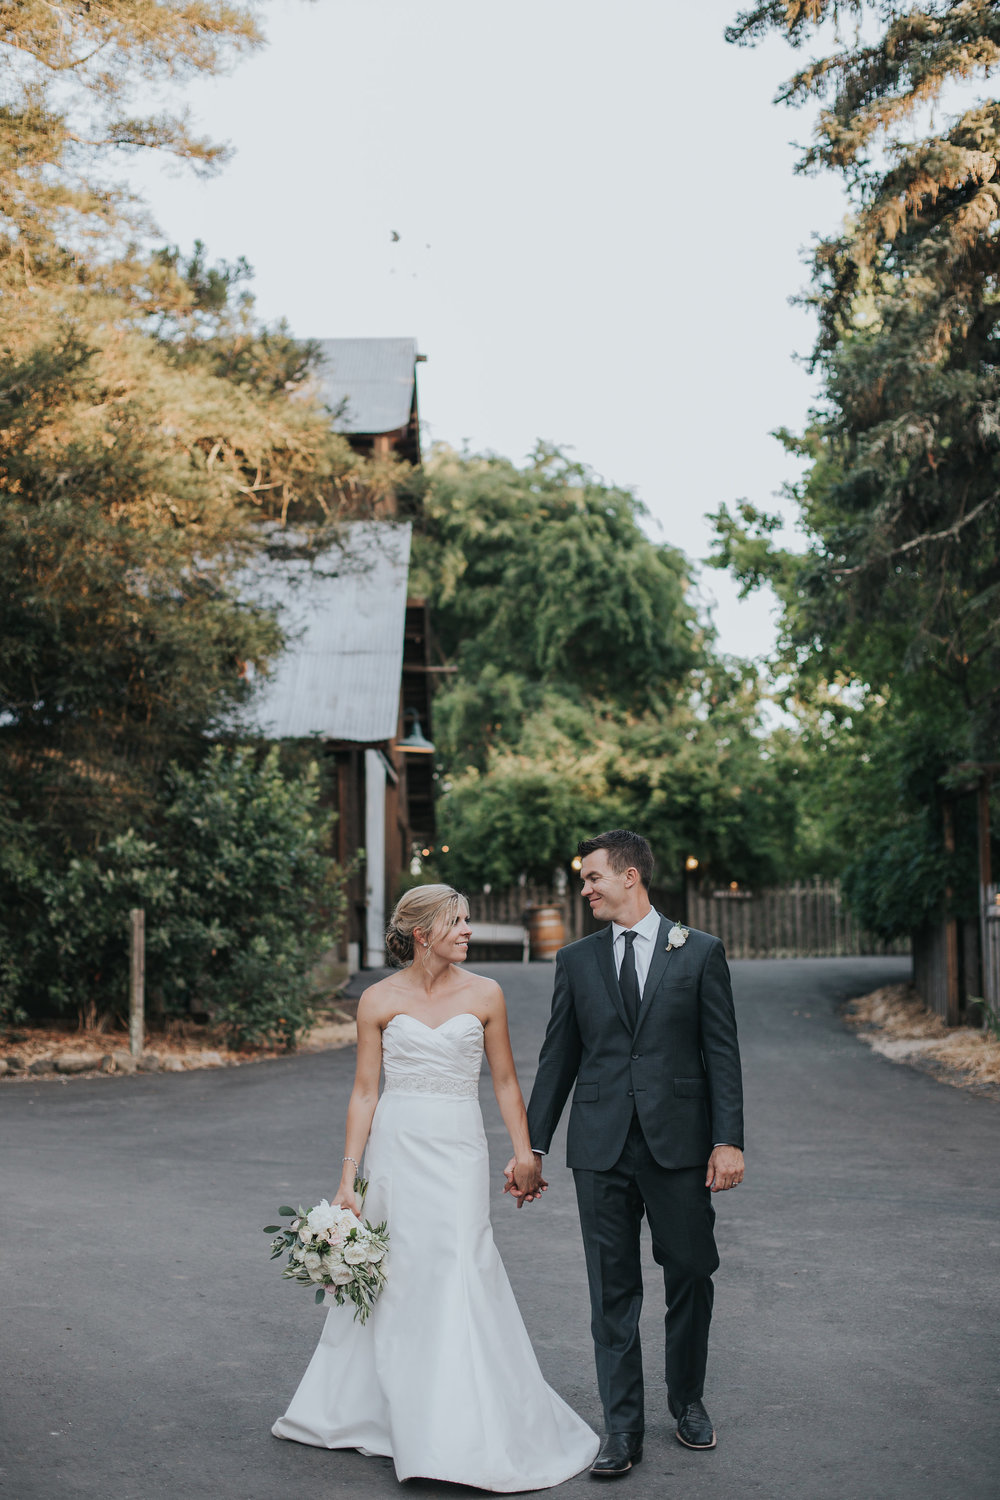 Ru's farm Wedding | Healdsburg CA